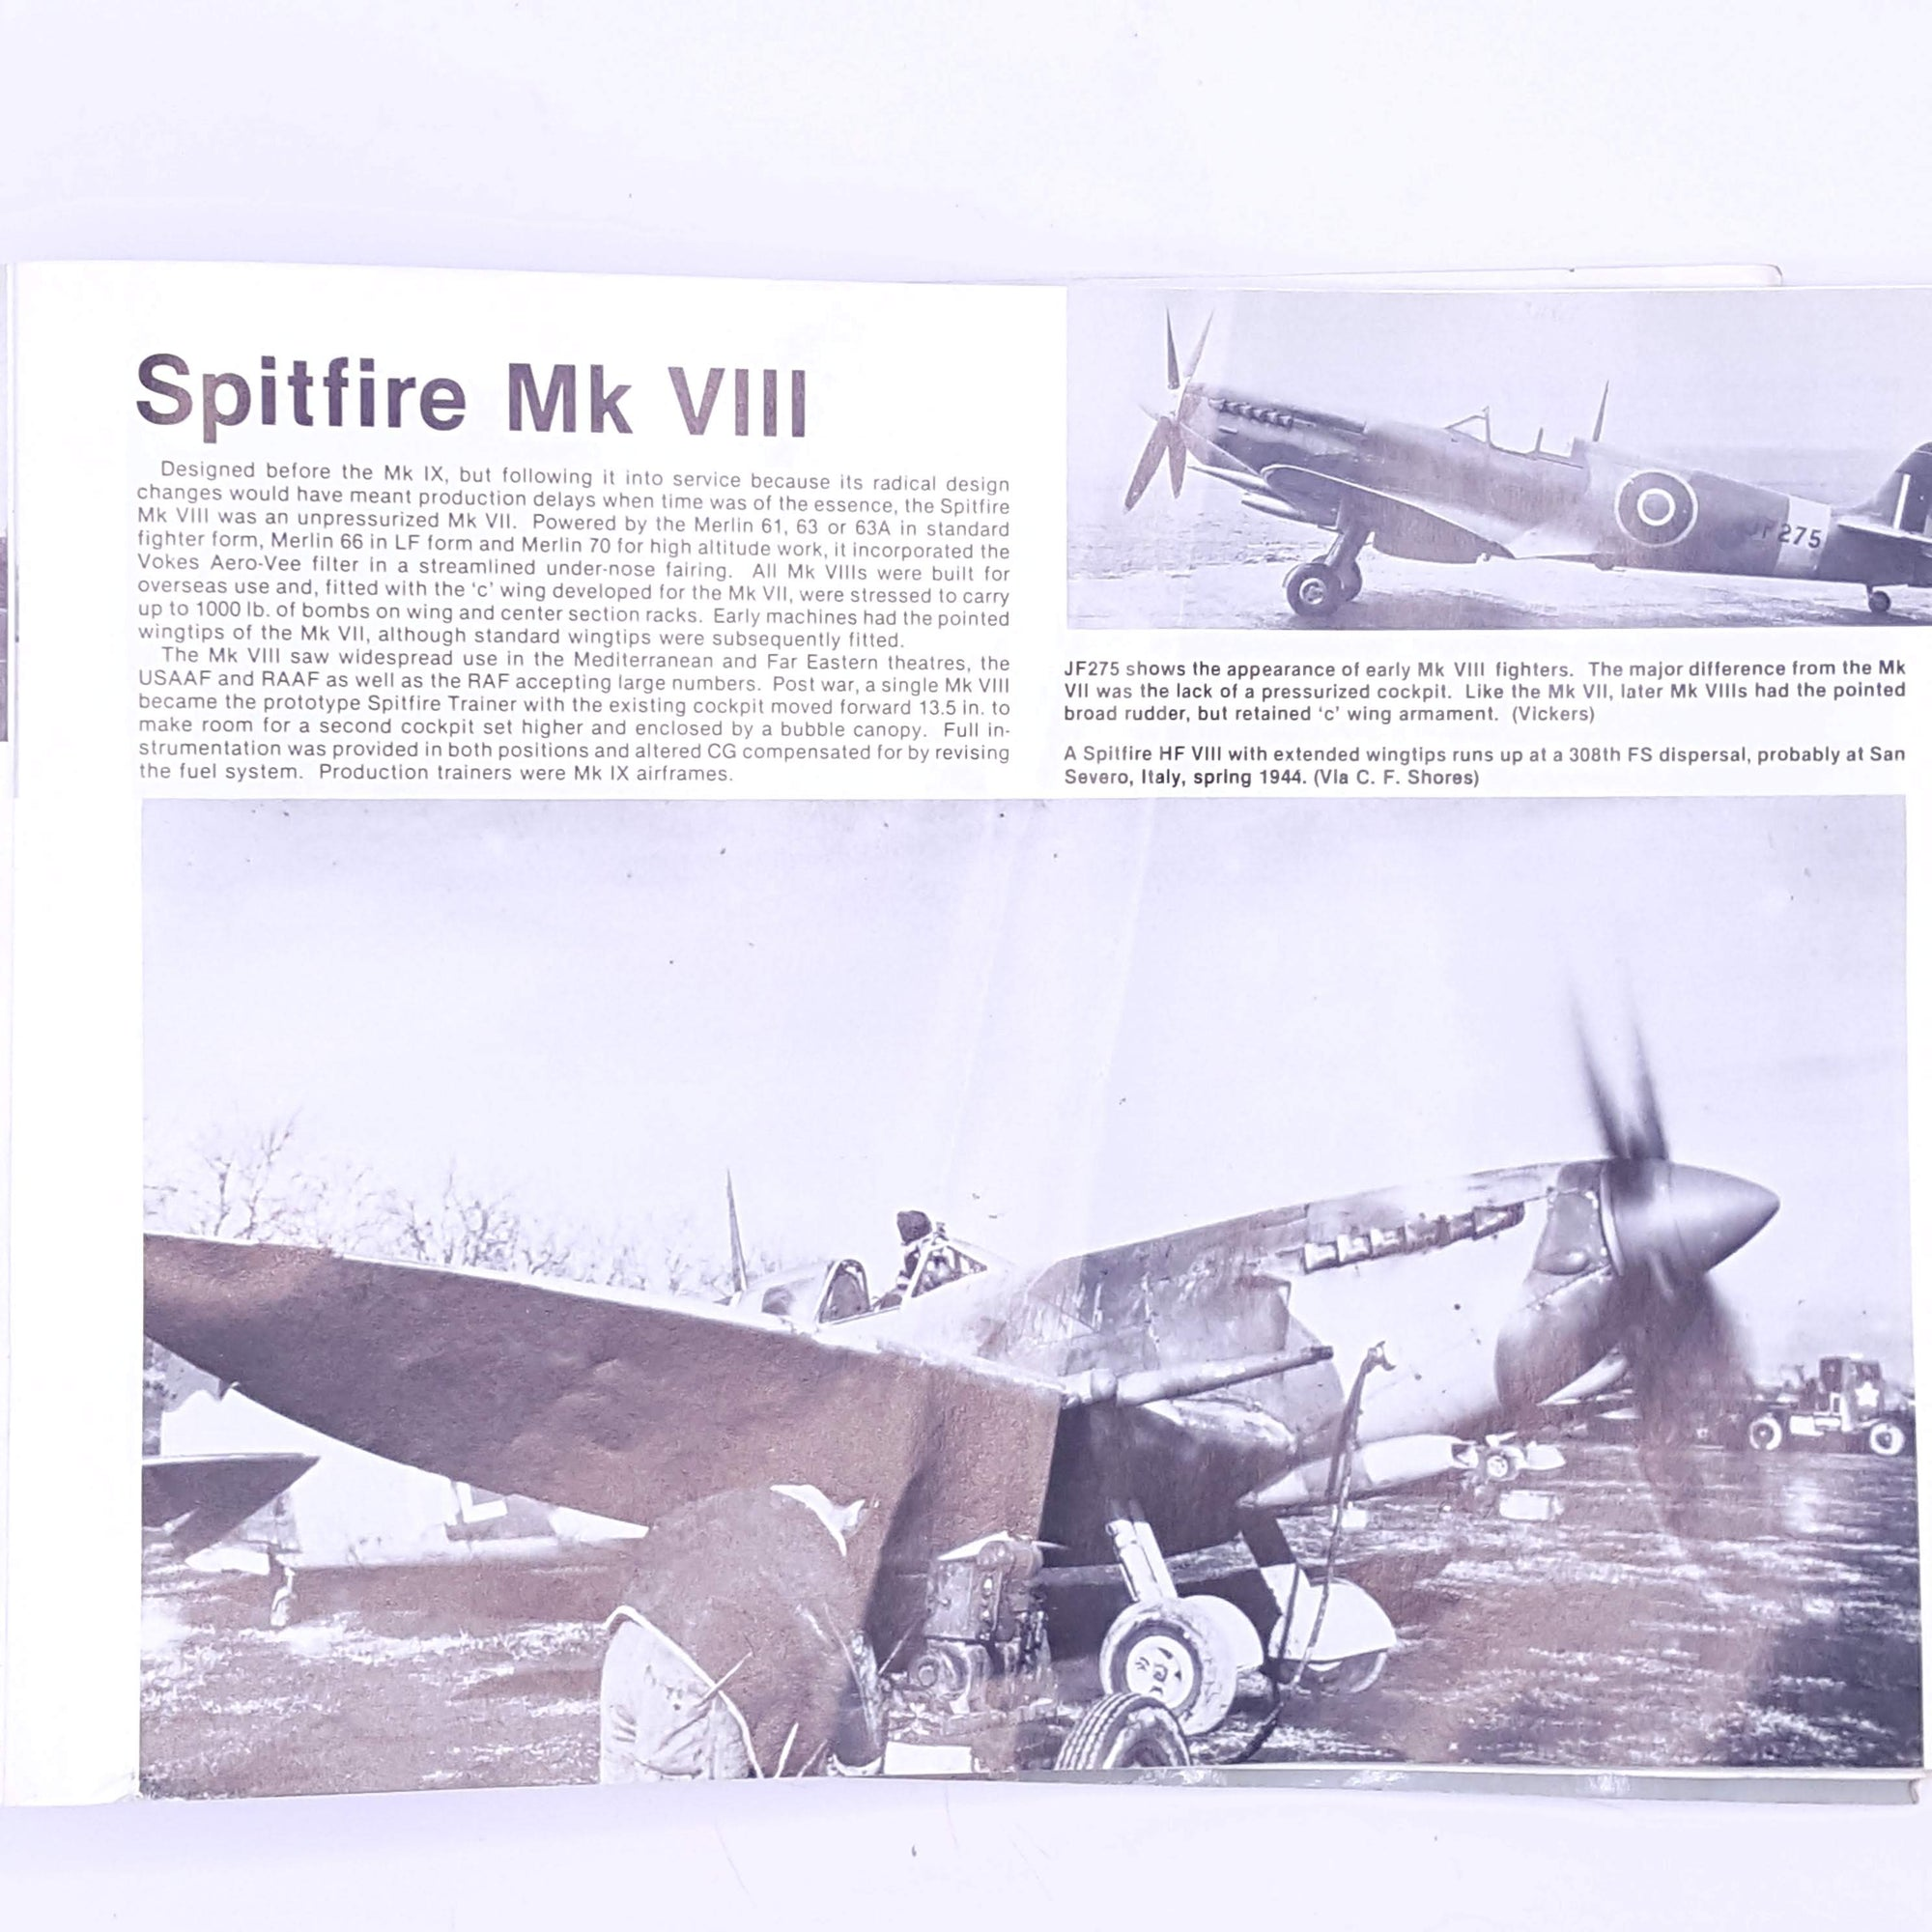 army-planes-patterned-thrift-classic-vintage-aircrafts-Spitfire-In-Action-old-christmas-gifts-for-him-spitfire-aeroplanes-books-country-house-library-antique-decorative-